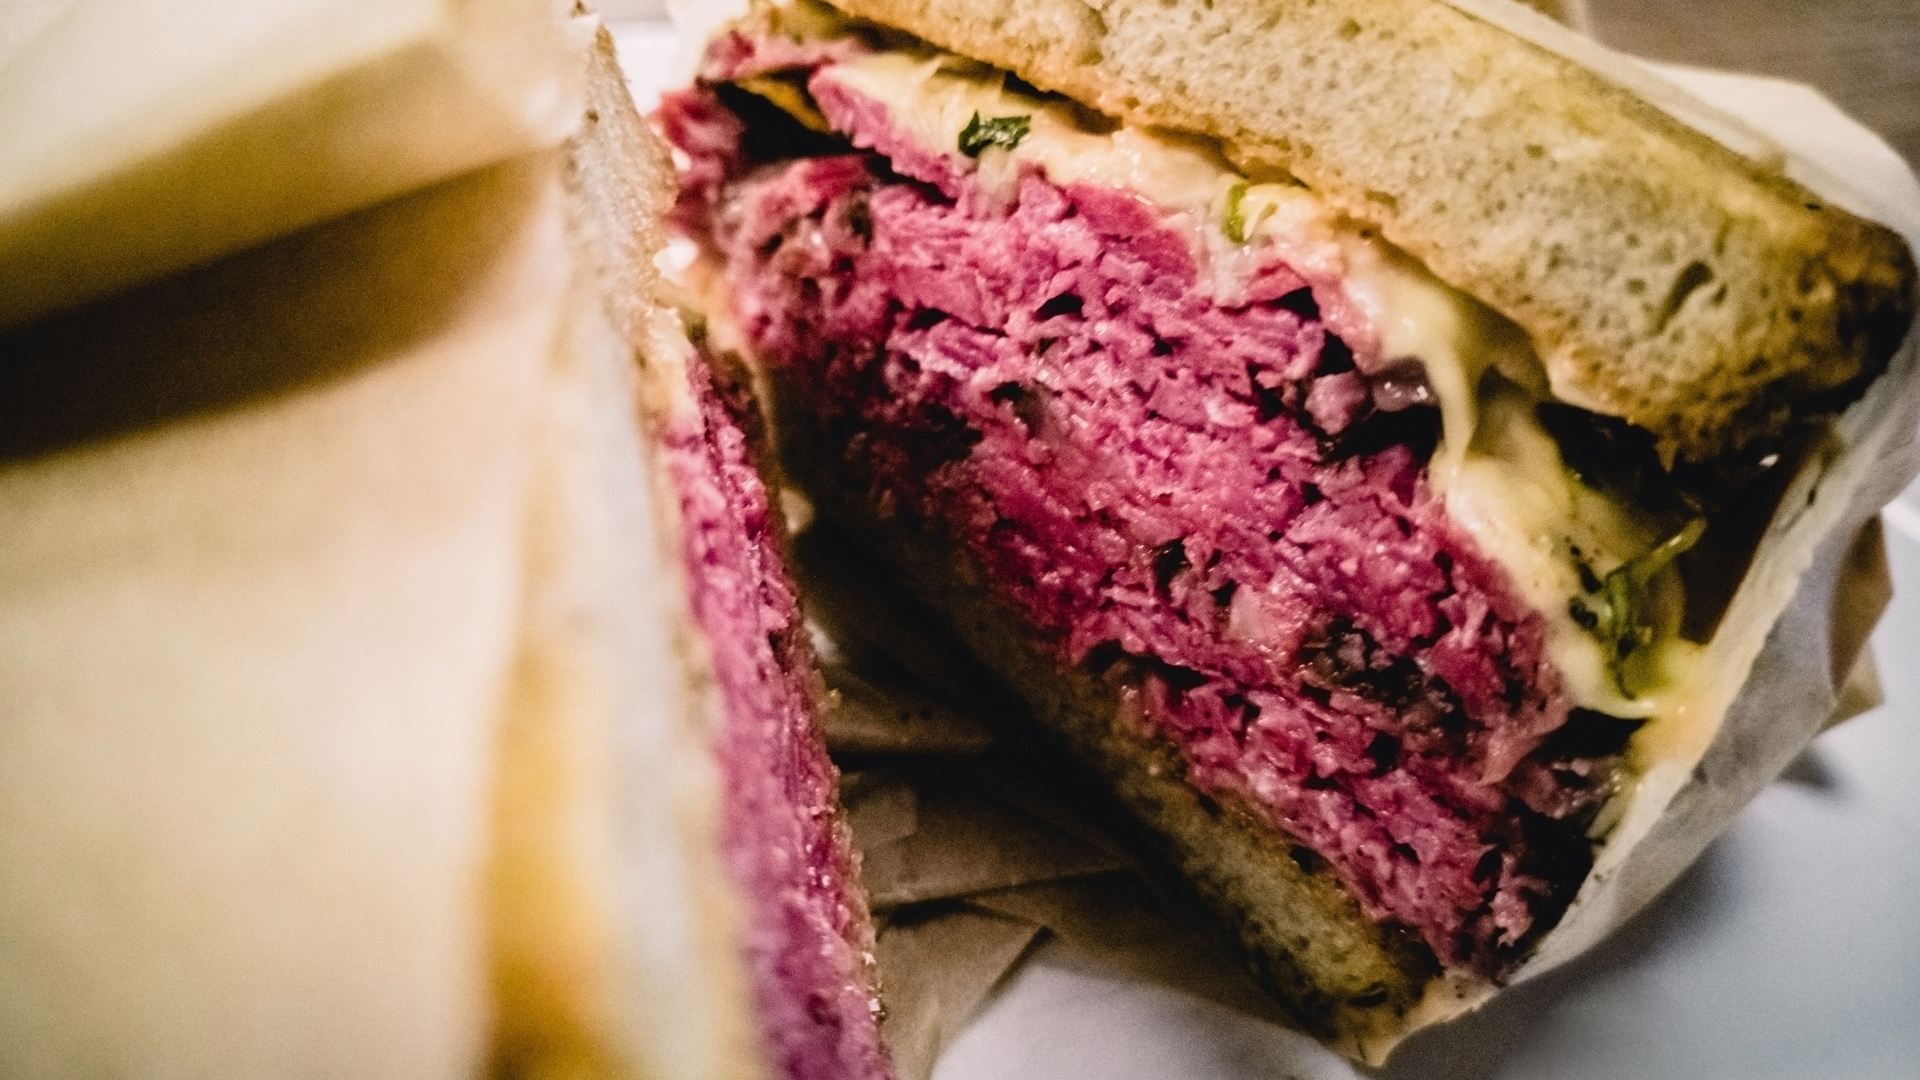 Pastrami on Rye on our Food Bucket List.